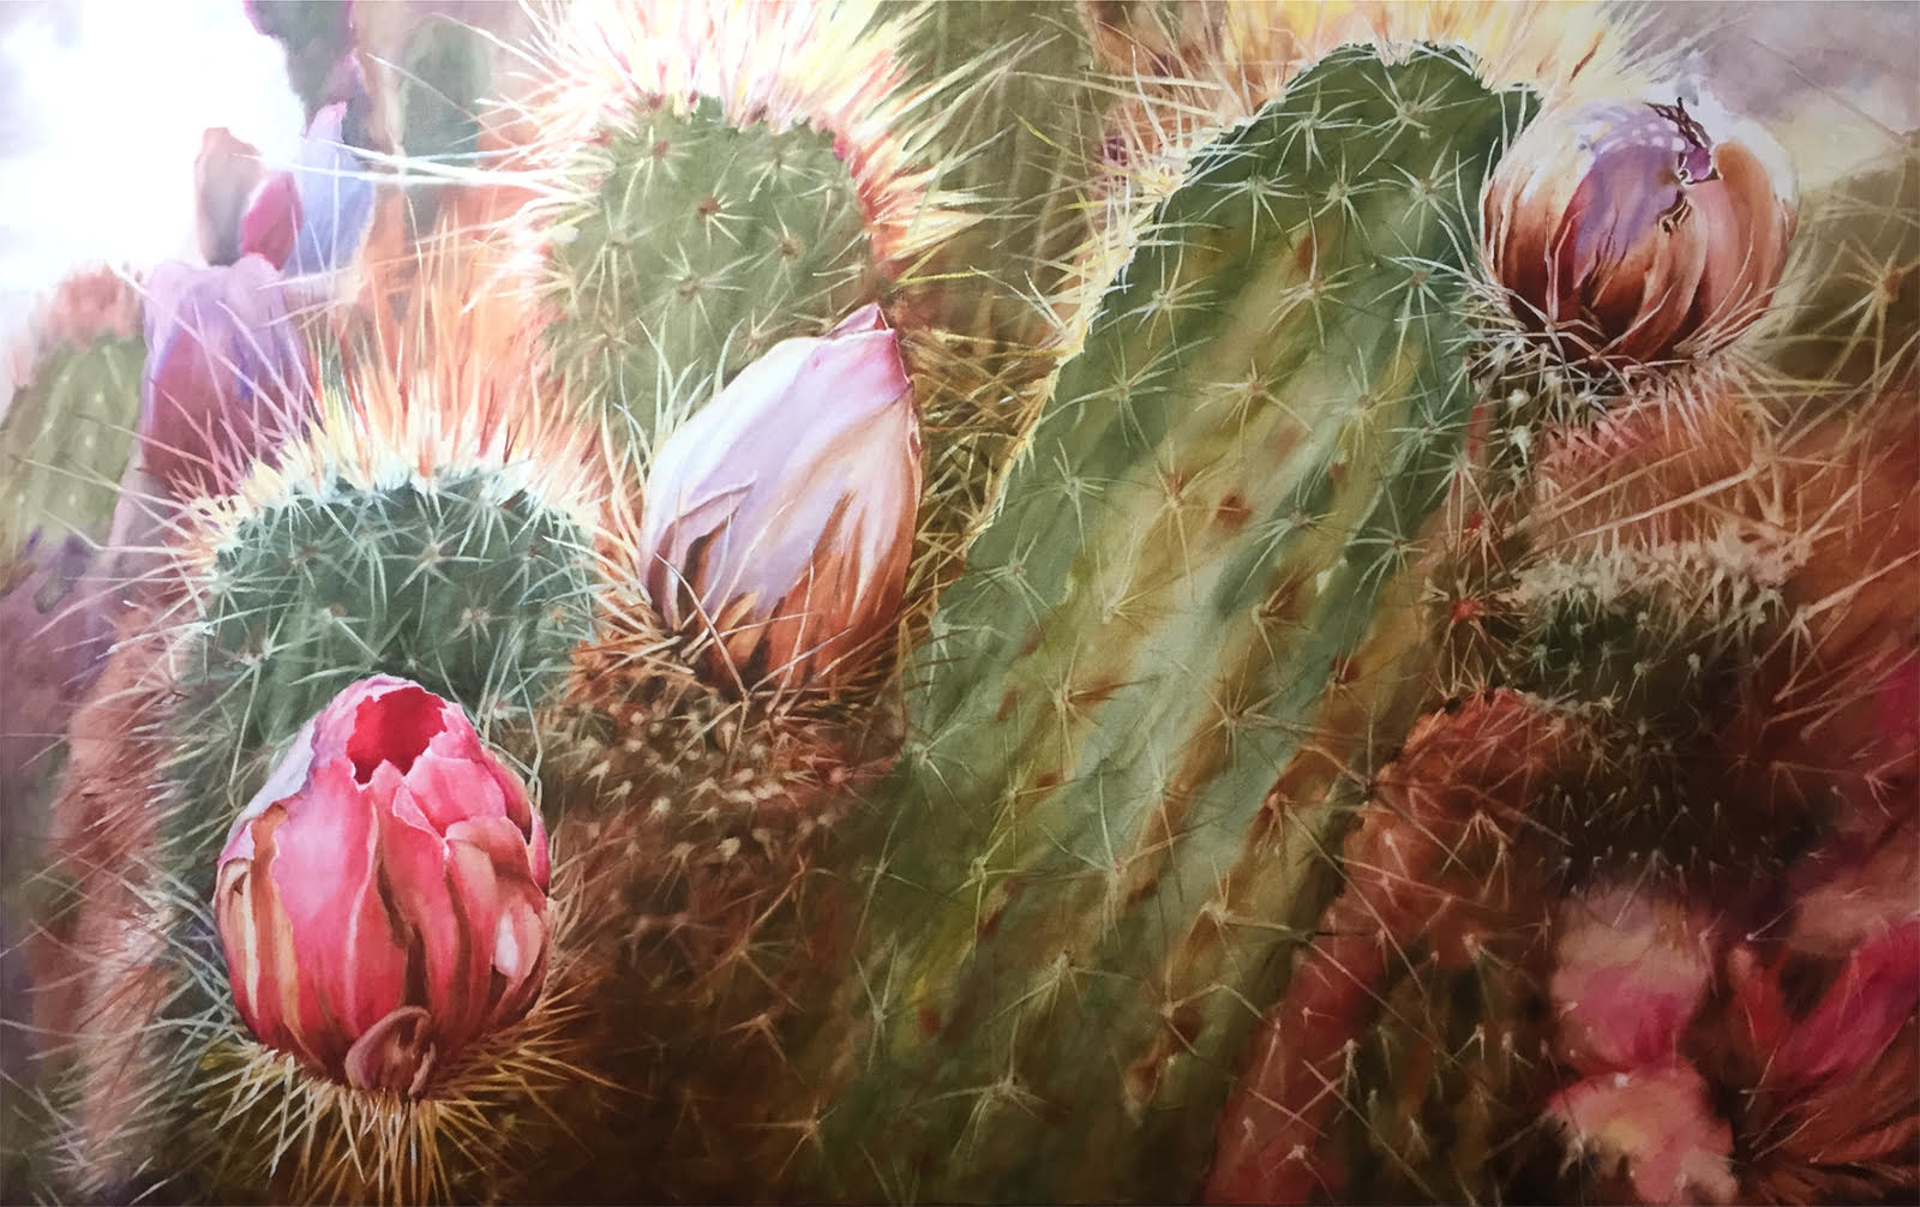 Cactus Glory by Cher McMacken